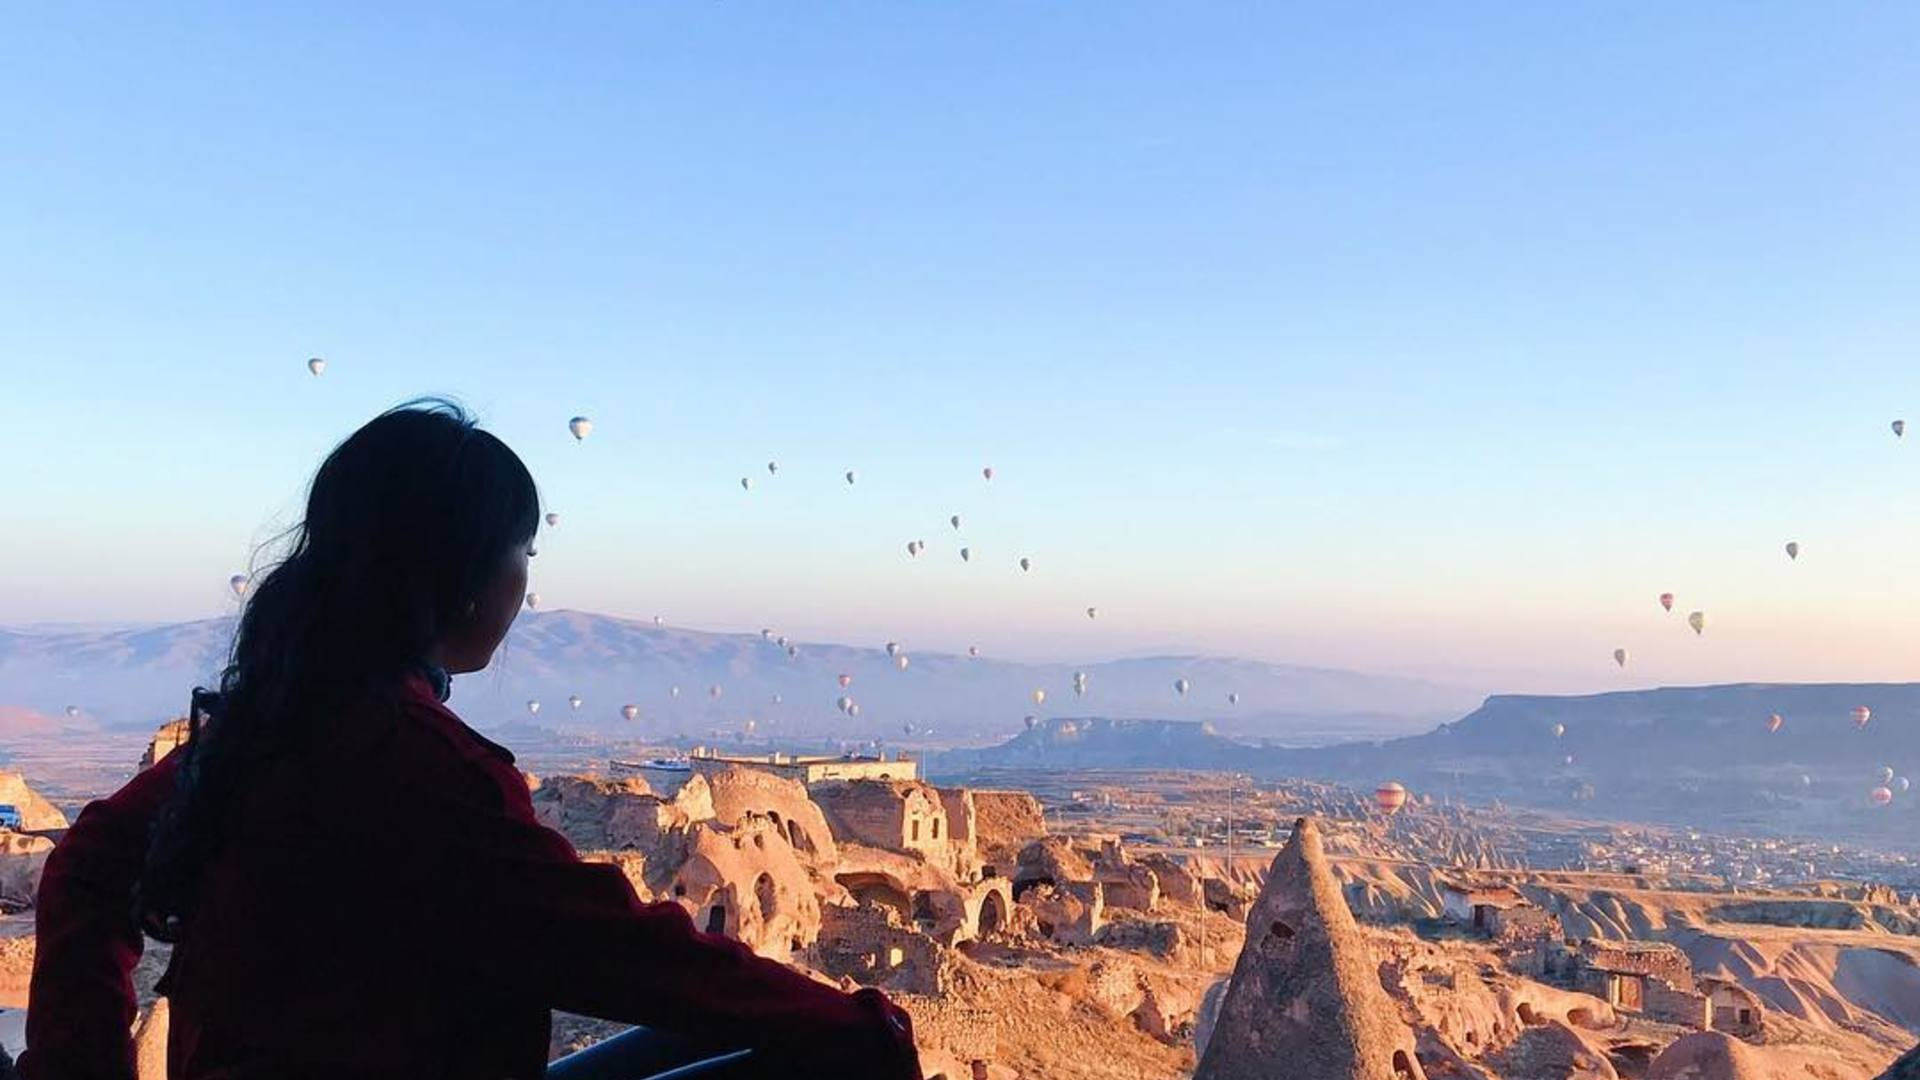 Uncovering Cappadocia, Turkey's Ancient Region With Houses Carved In Stone